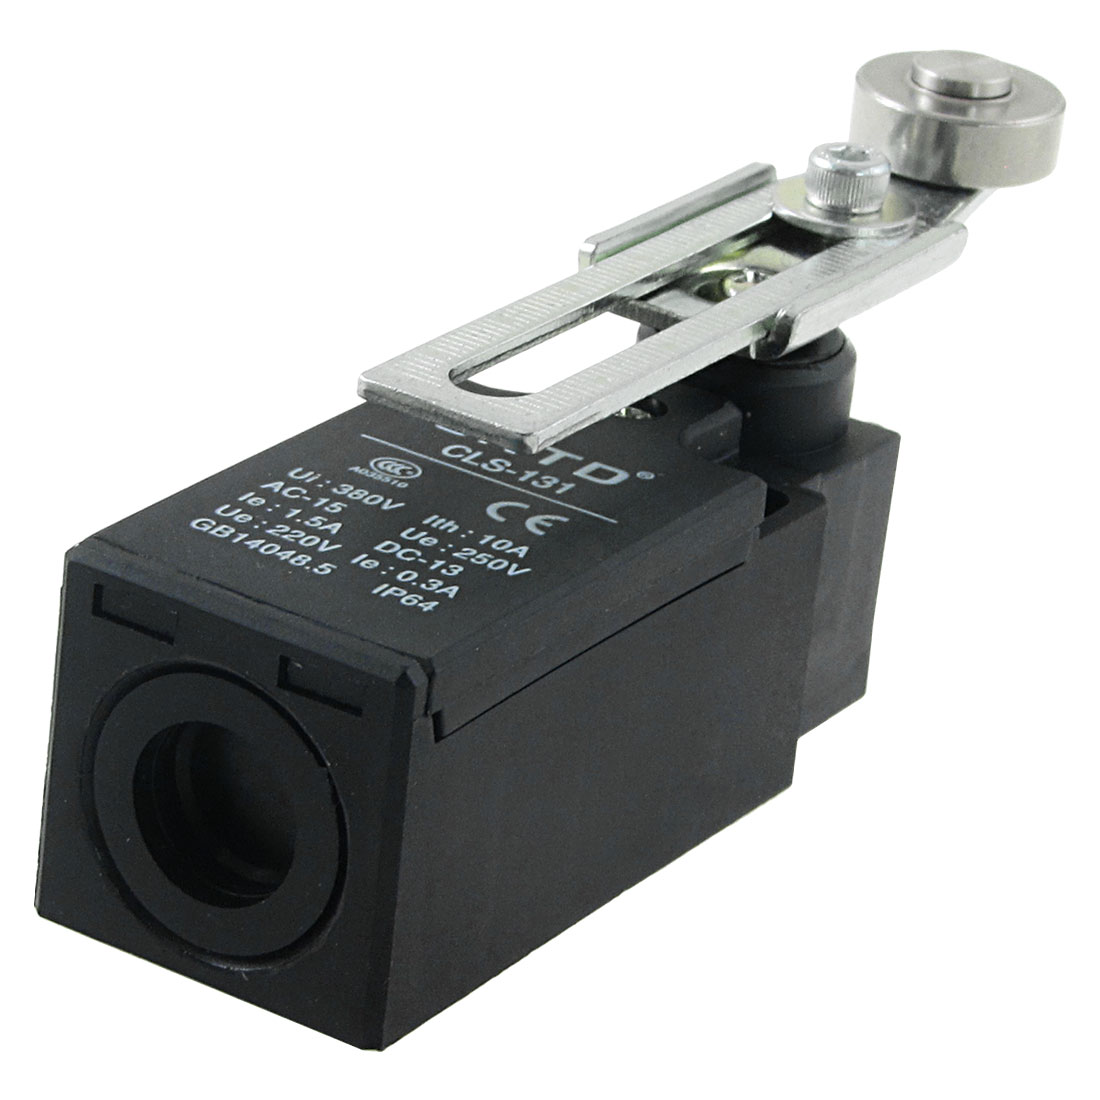 CLS-131 Rotary Adjustable Roller Lever Arm Limit Switch AC 250V 1.5A DC 220V 0.3A